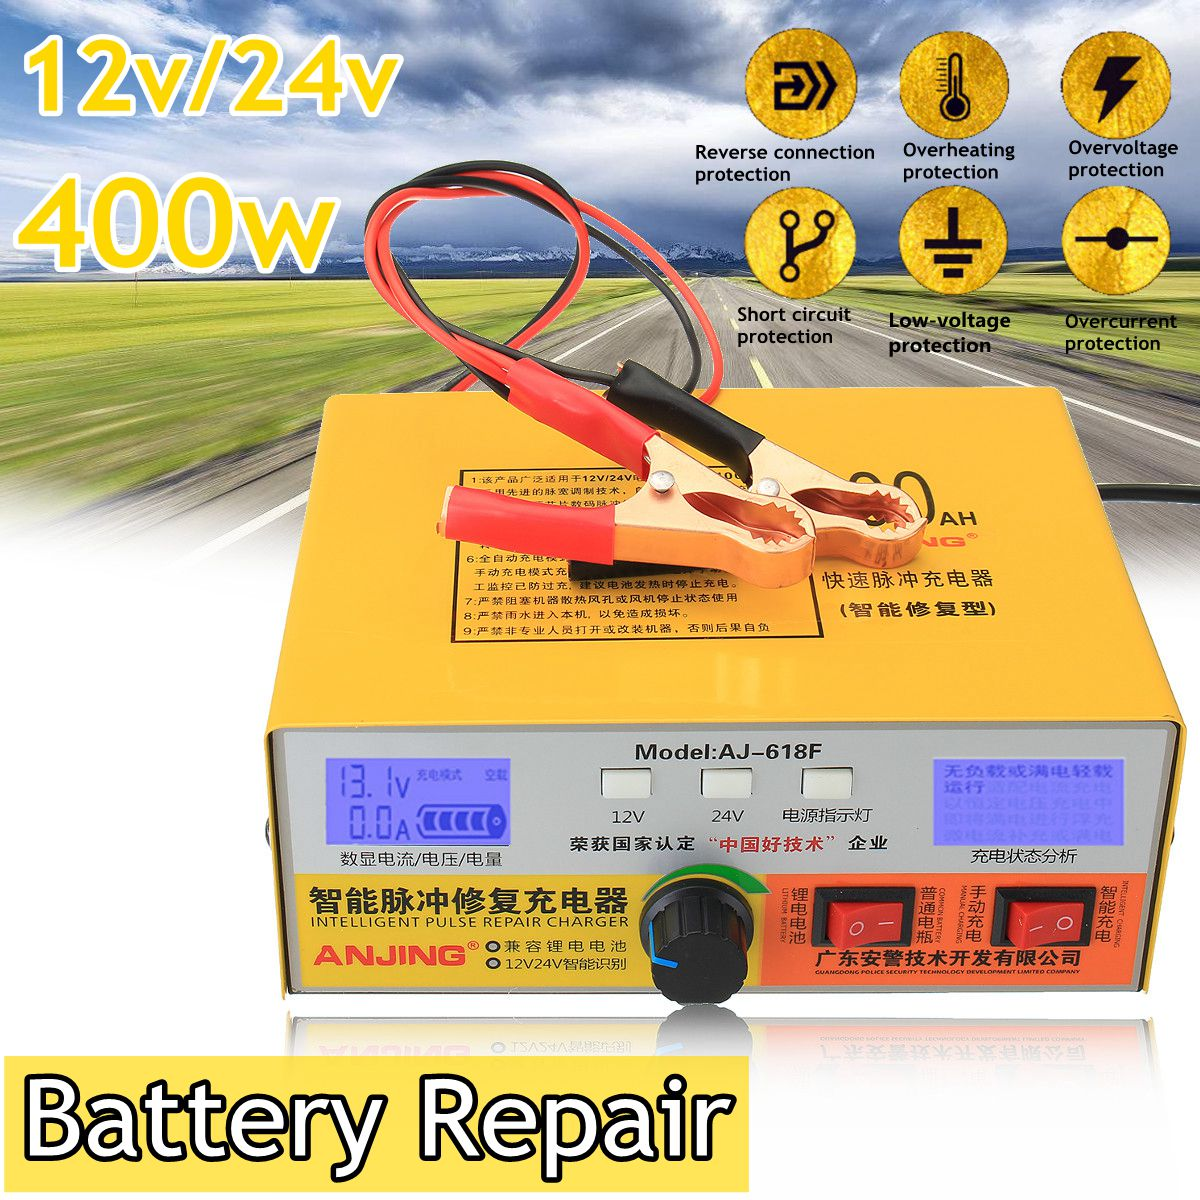 pulse repair type automatic intelligent digital display heat radiator control 220v 6v 12v 120ah car battery charger energy save Automatic Intelligent Pulse Repair Type 12V/24V 400AH Car Battery Charger AJ-618